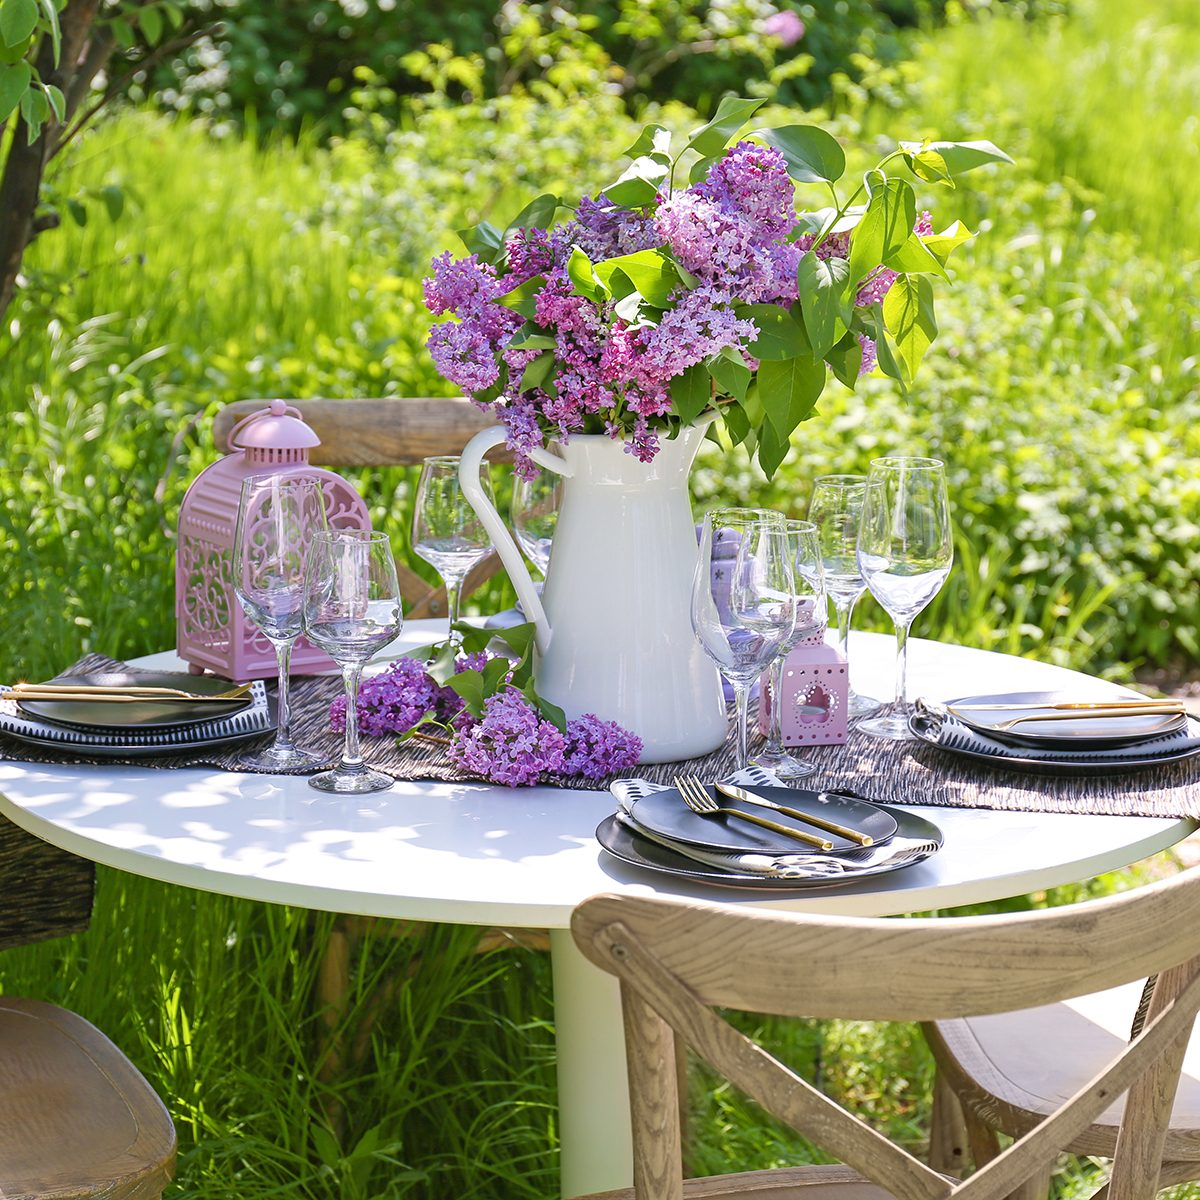 Beautiful table setting with lilac flowers decoration outdoors